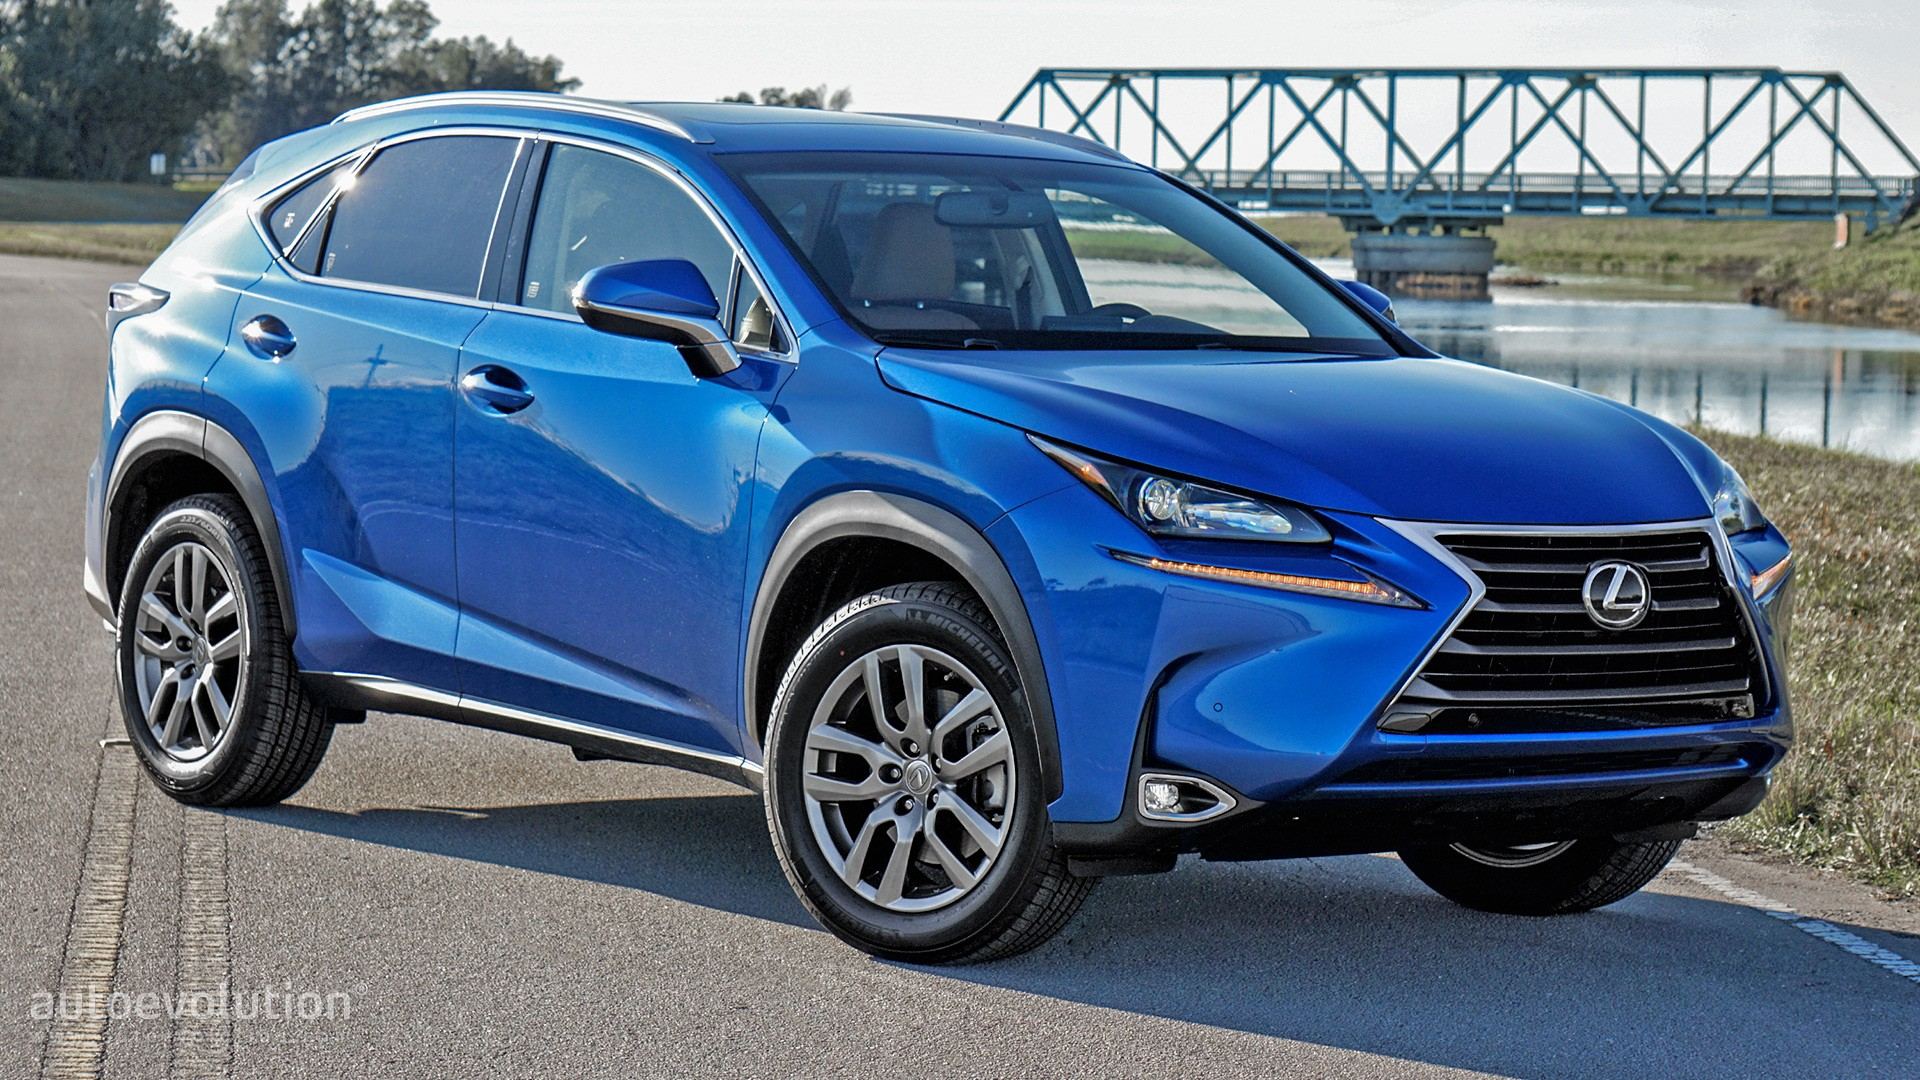 best rc off road cars with Lexus Ux Concept Design Revealed Ahead Of Paris Previews New  Pact Suv 111056 on Suzuki Vitara Is Back New Small Suv Bound For Paris Show 2014 likewise Cargo Heli Lego 31029 further Learn To Drift in addition 2016 Toyota Ta a 6 Inch Lift furthermore 1106278 venturi Vbb 3 Sets New Electric Car Speed Record Pending Certification.